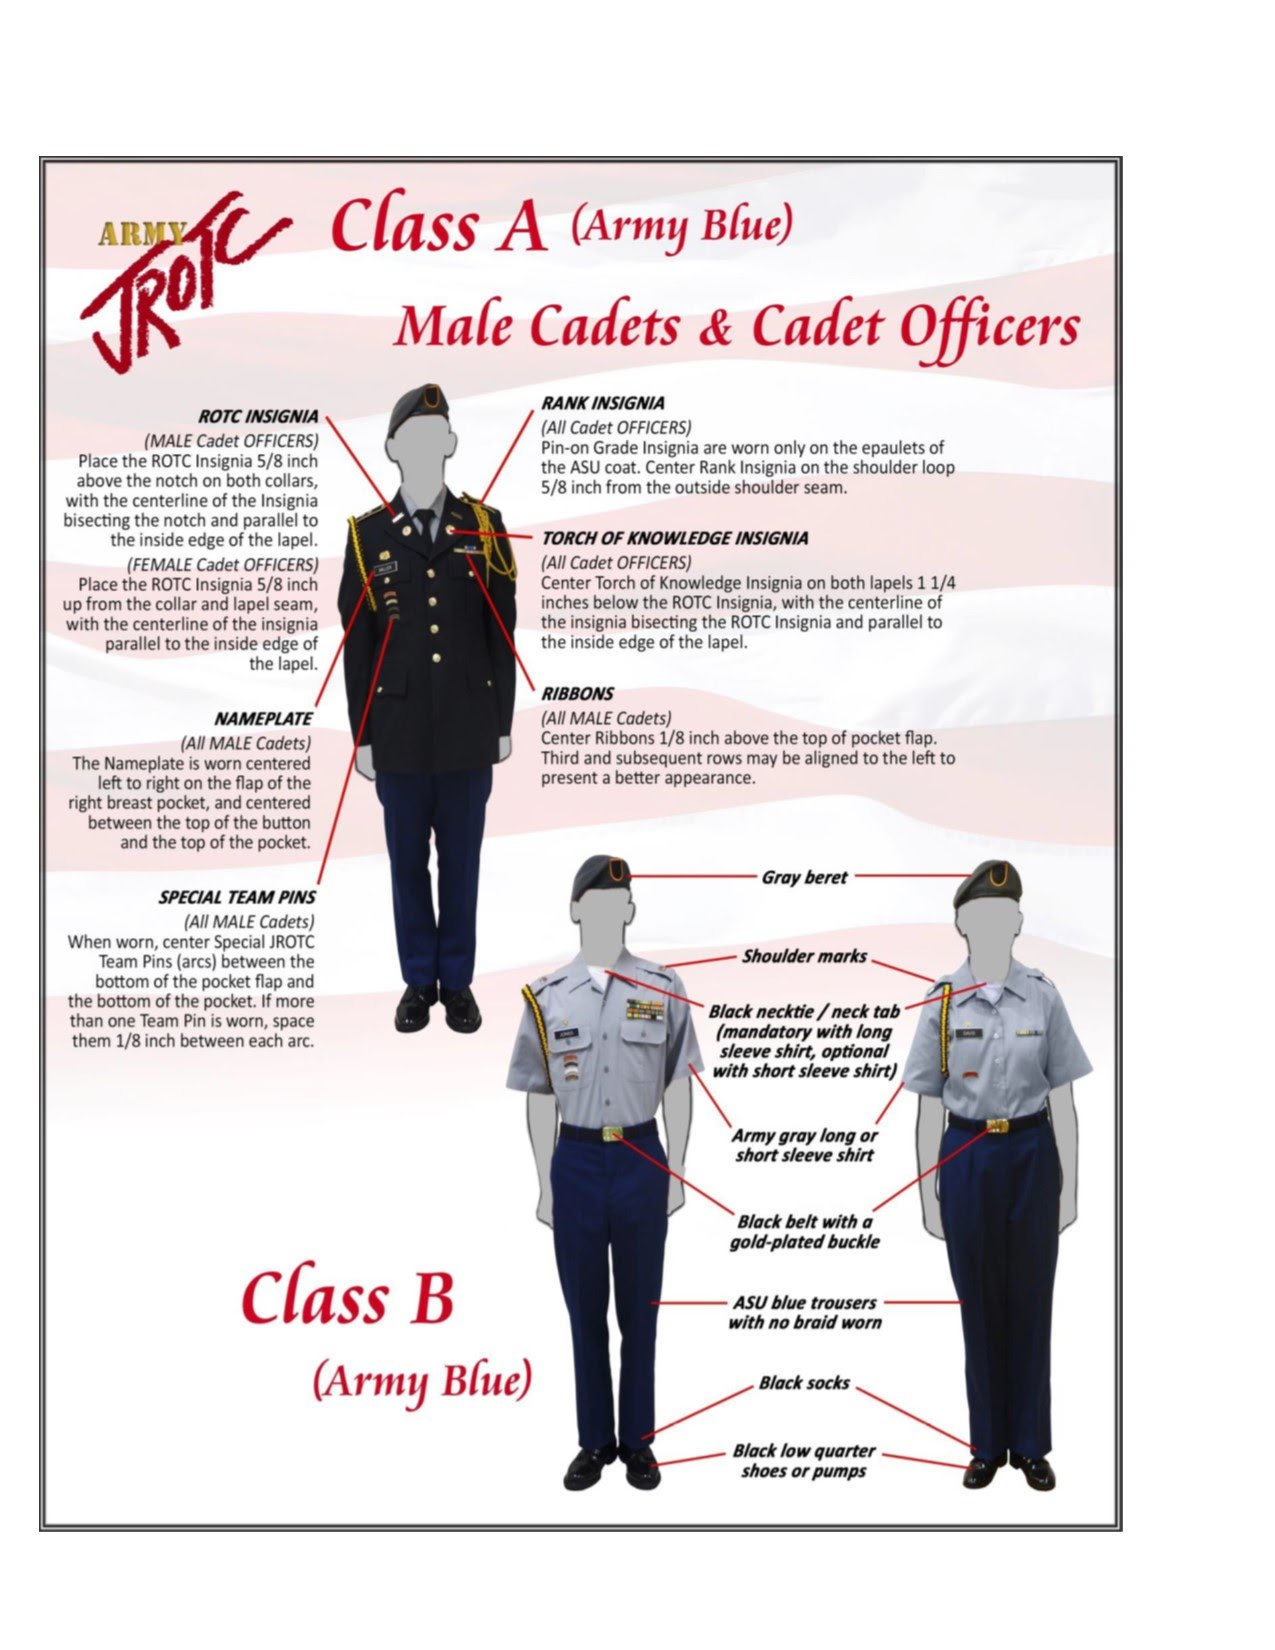 Sorry, that jrotc class b uniform